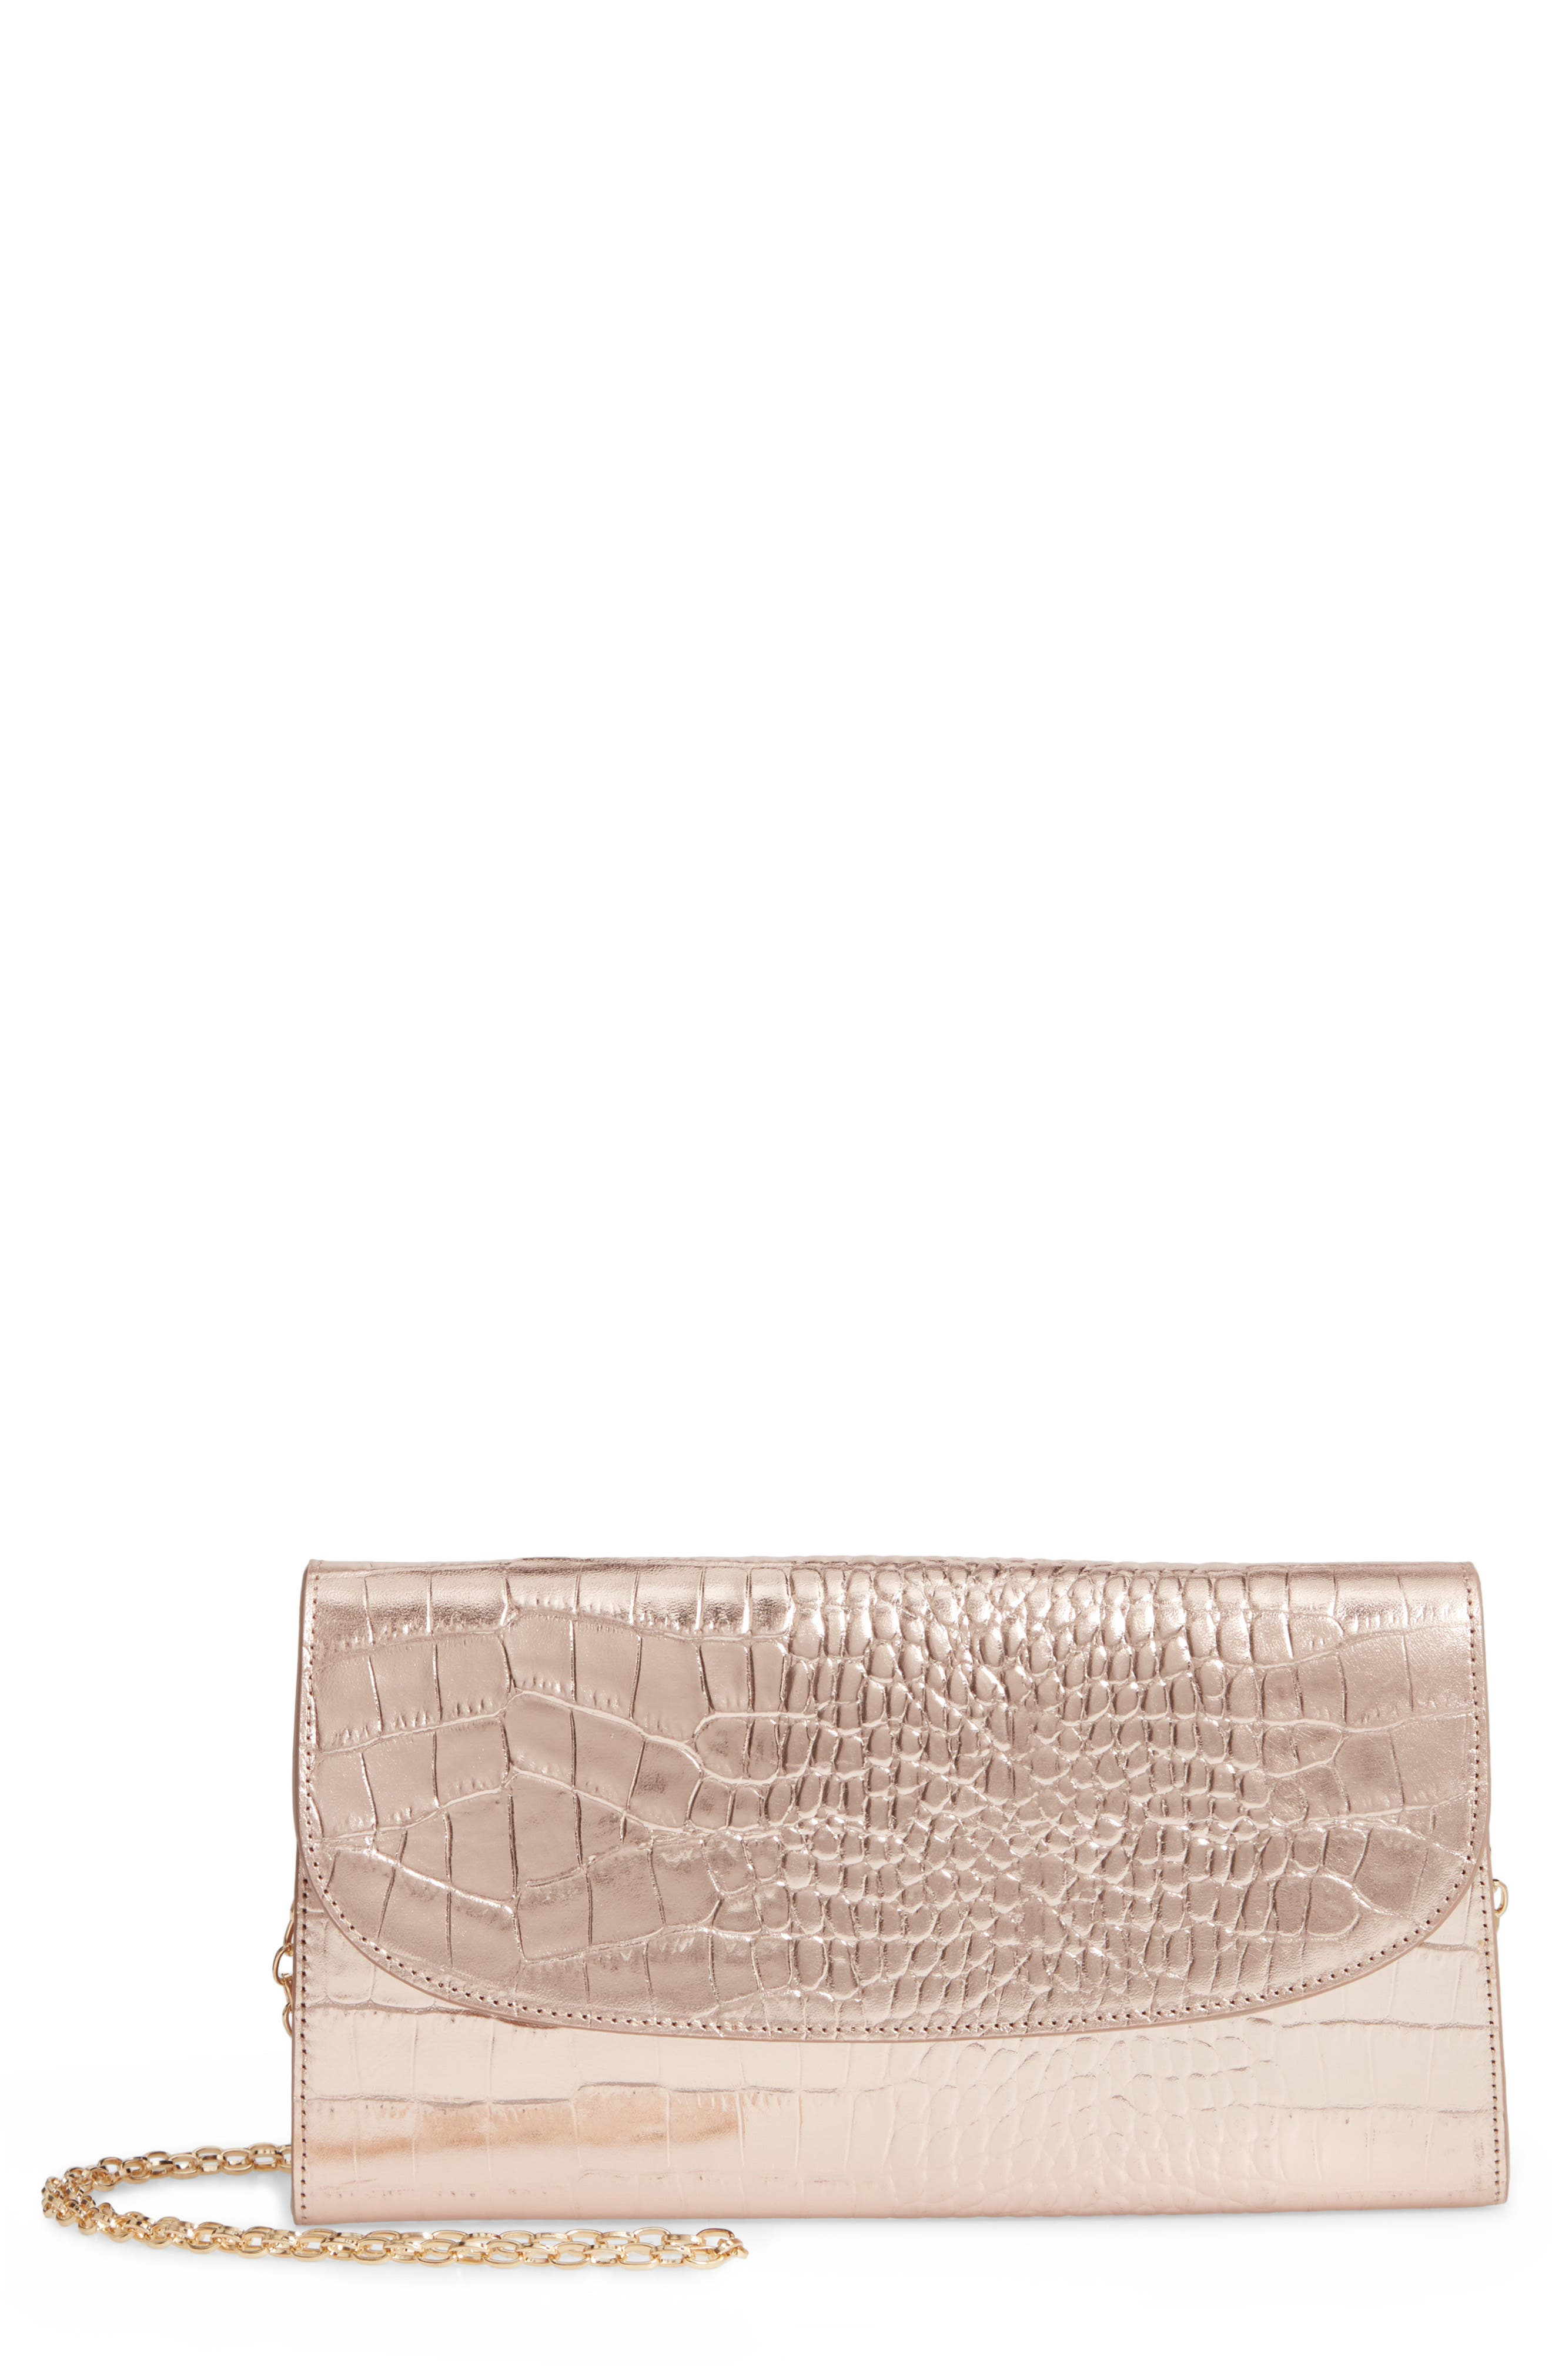 NORDSTROM Croc Embossed Metallic Leather Clutch, Main, color, 660